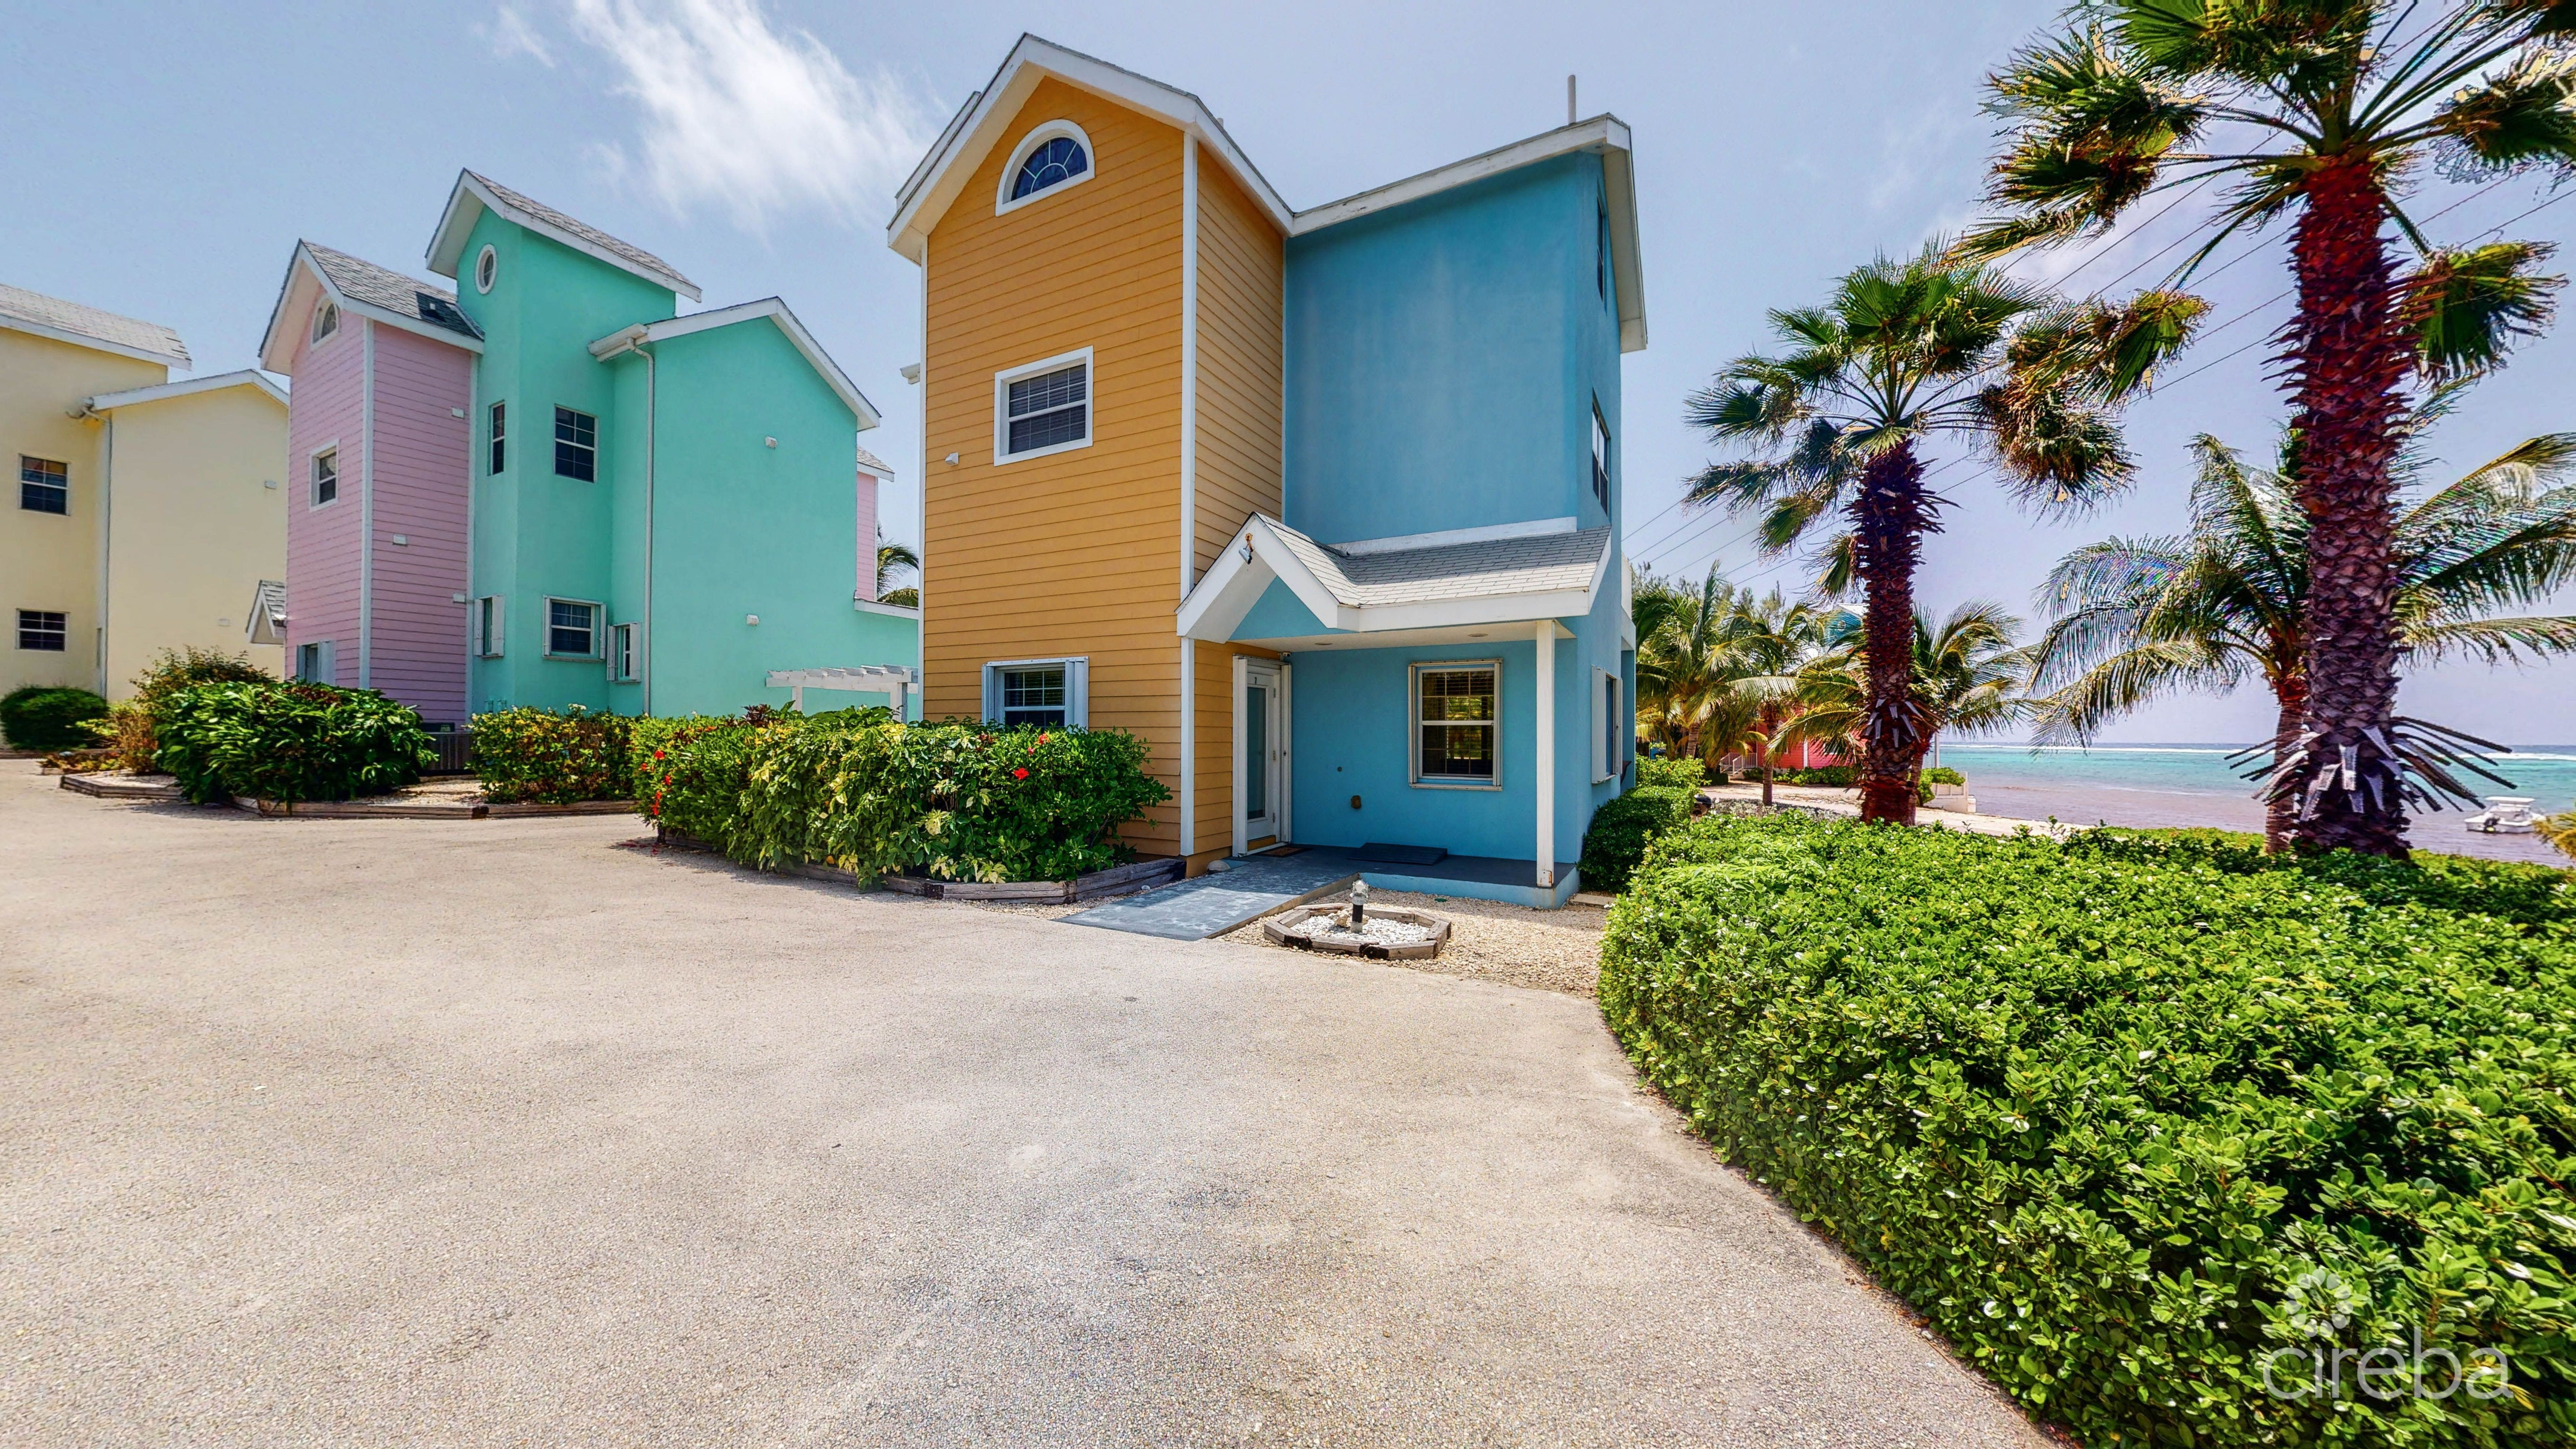 TONS of parking. This unit has space for two spots next to the newly added wheel chair ramp. another parking spot under a carport plus more visitor parking conveniently located in the front of Paradise Villas. Note the gorgeous sea view!